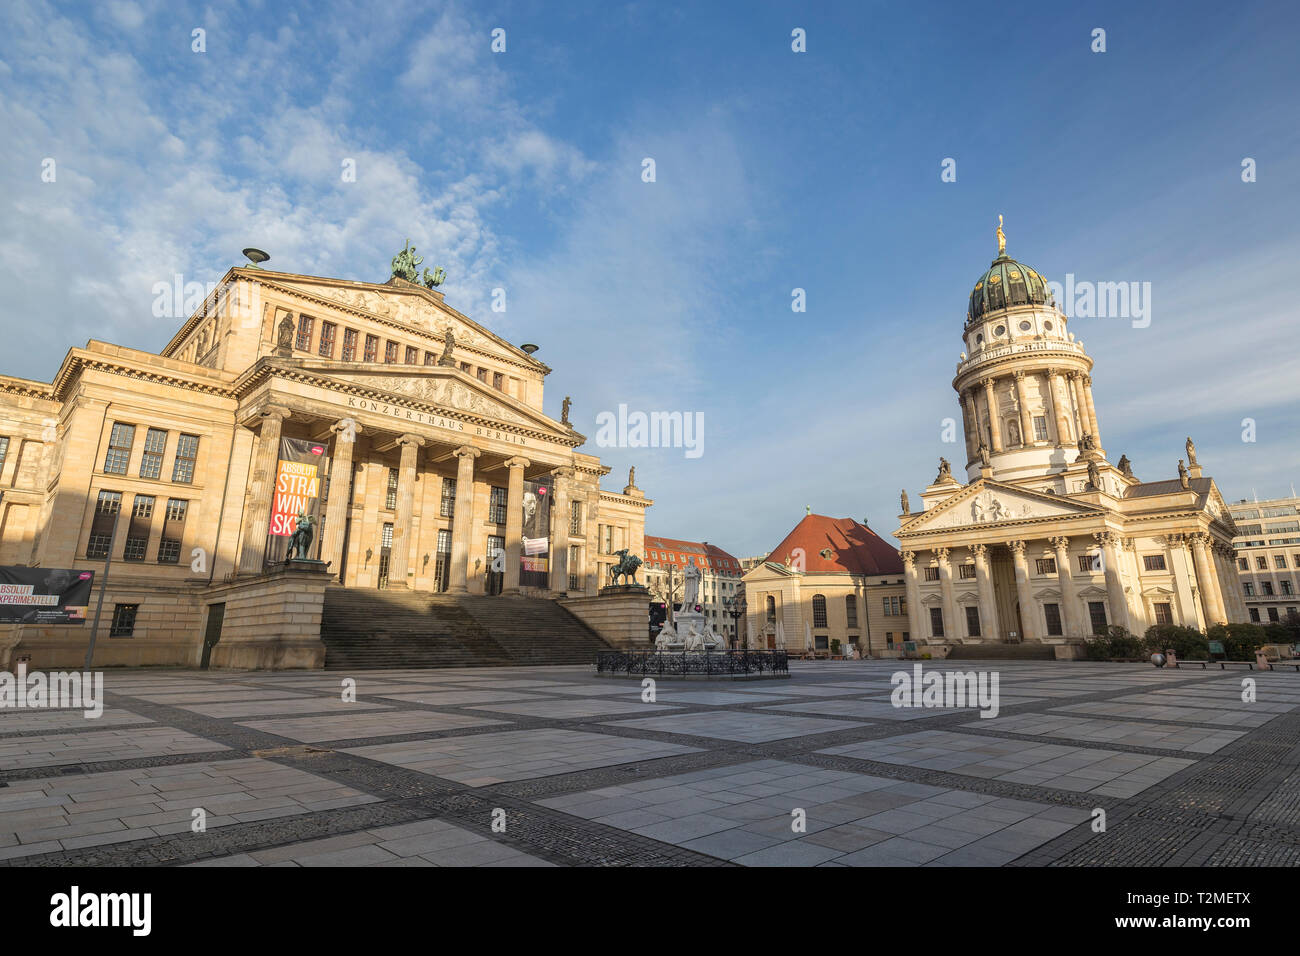 Konzerthaus Berlin (Berlin Concert Hall) and Französischer Dom (French Cathedral) at empty Gendarmenmarkt Square in Berlin, Germany, at sunny morning. Stock Photo